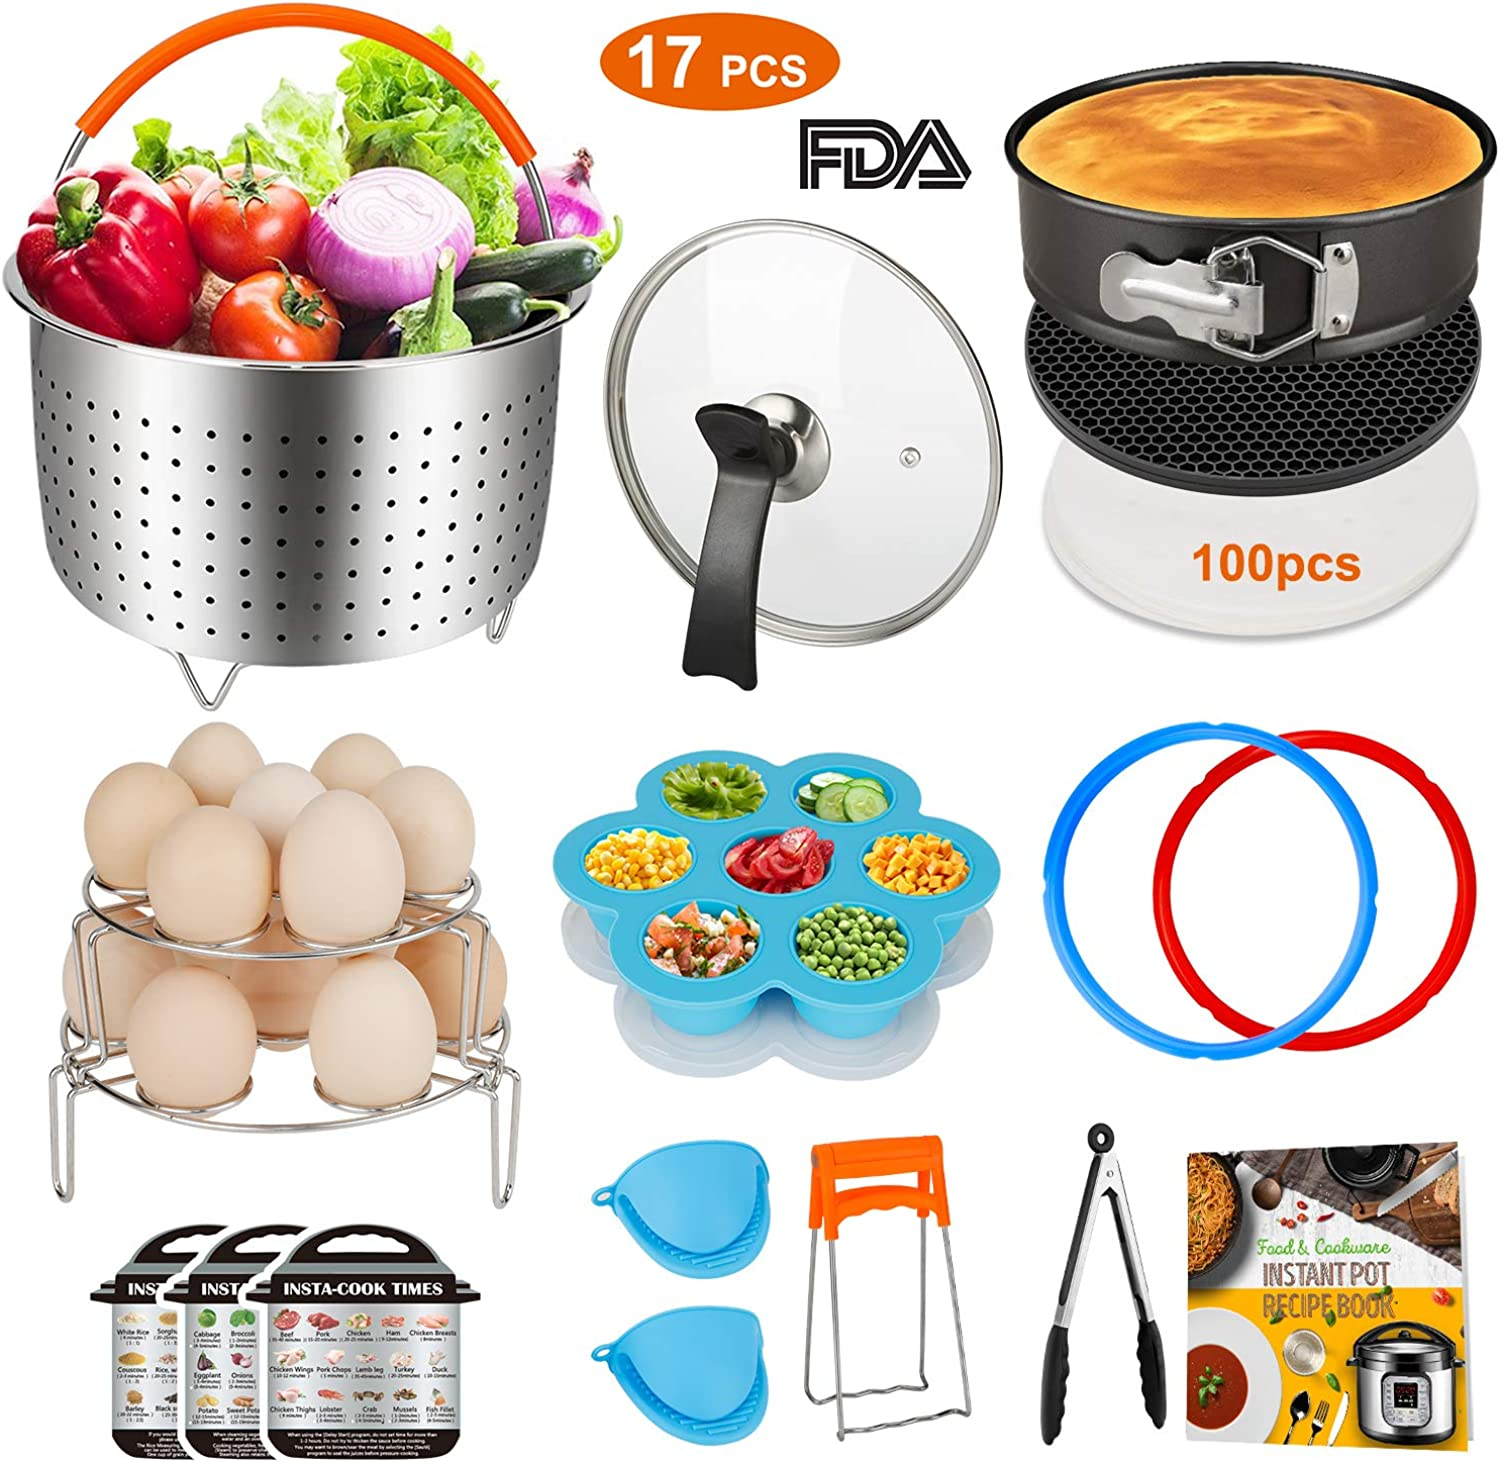 Accessories Set for 8 Quart Instant Pot Only with Sealing Rings, Tempered Glass Lid, and Steamer Basket.